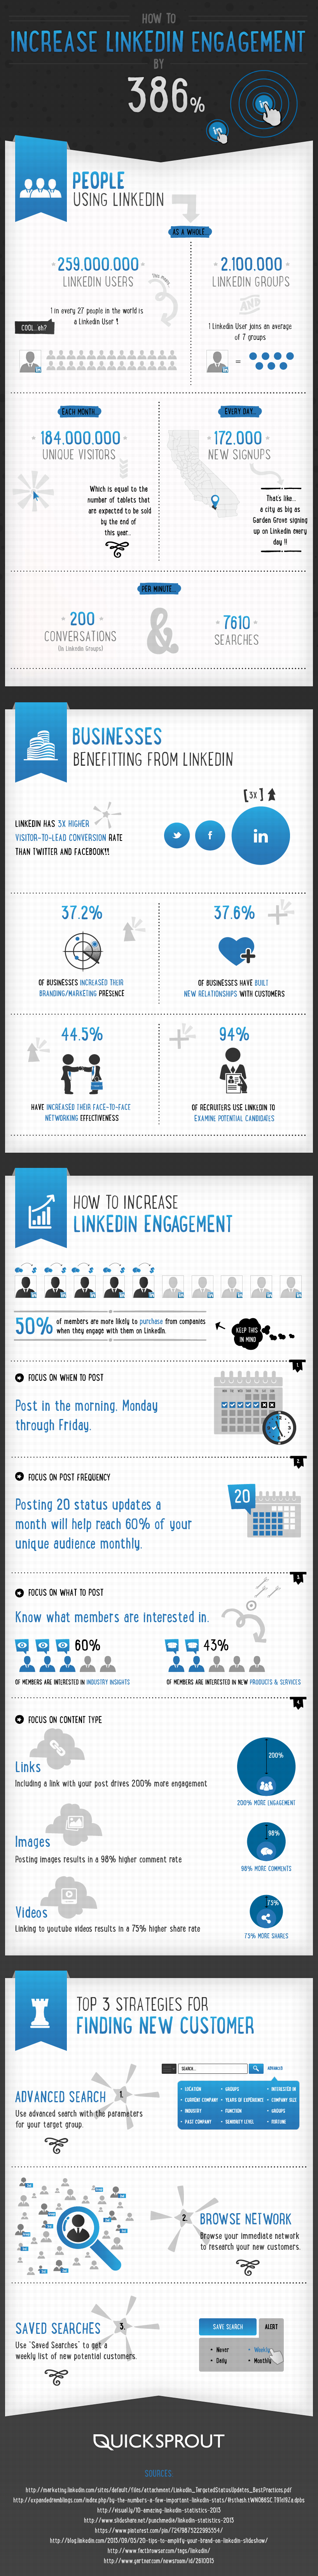 How to Increase LinkedIn Engagement by 386%